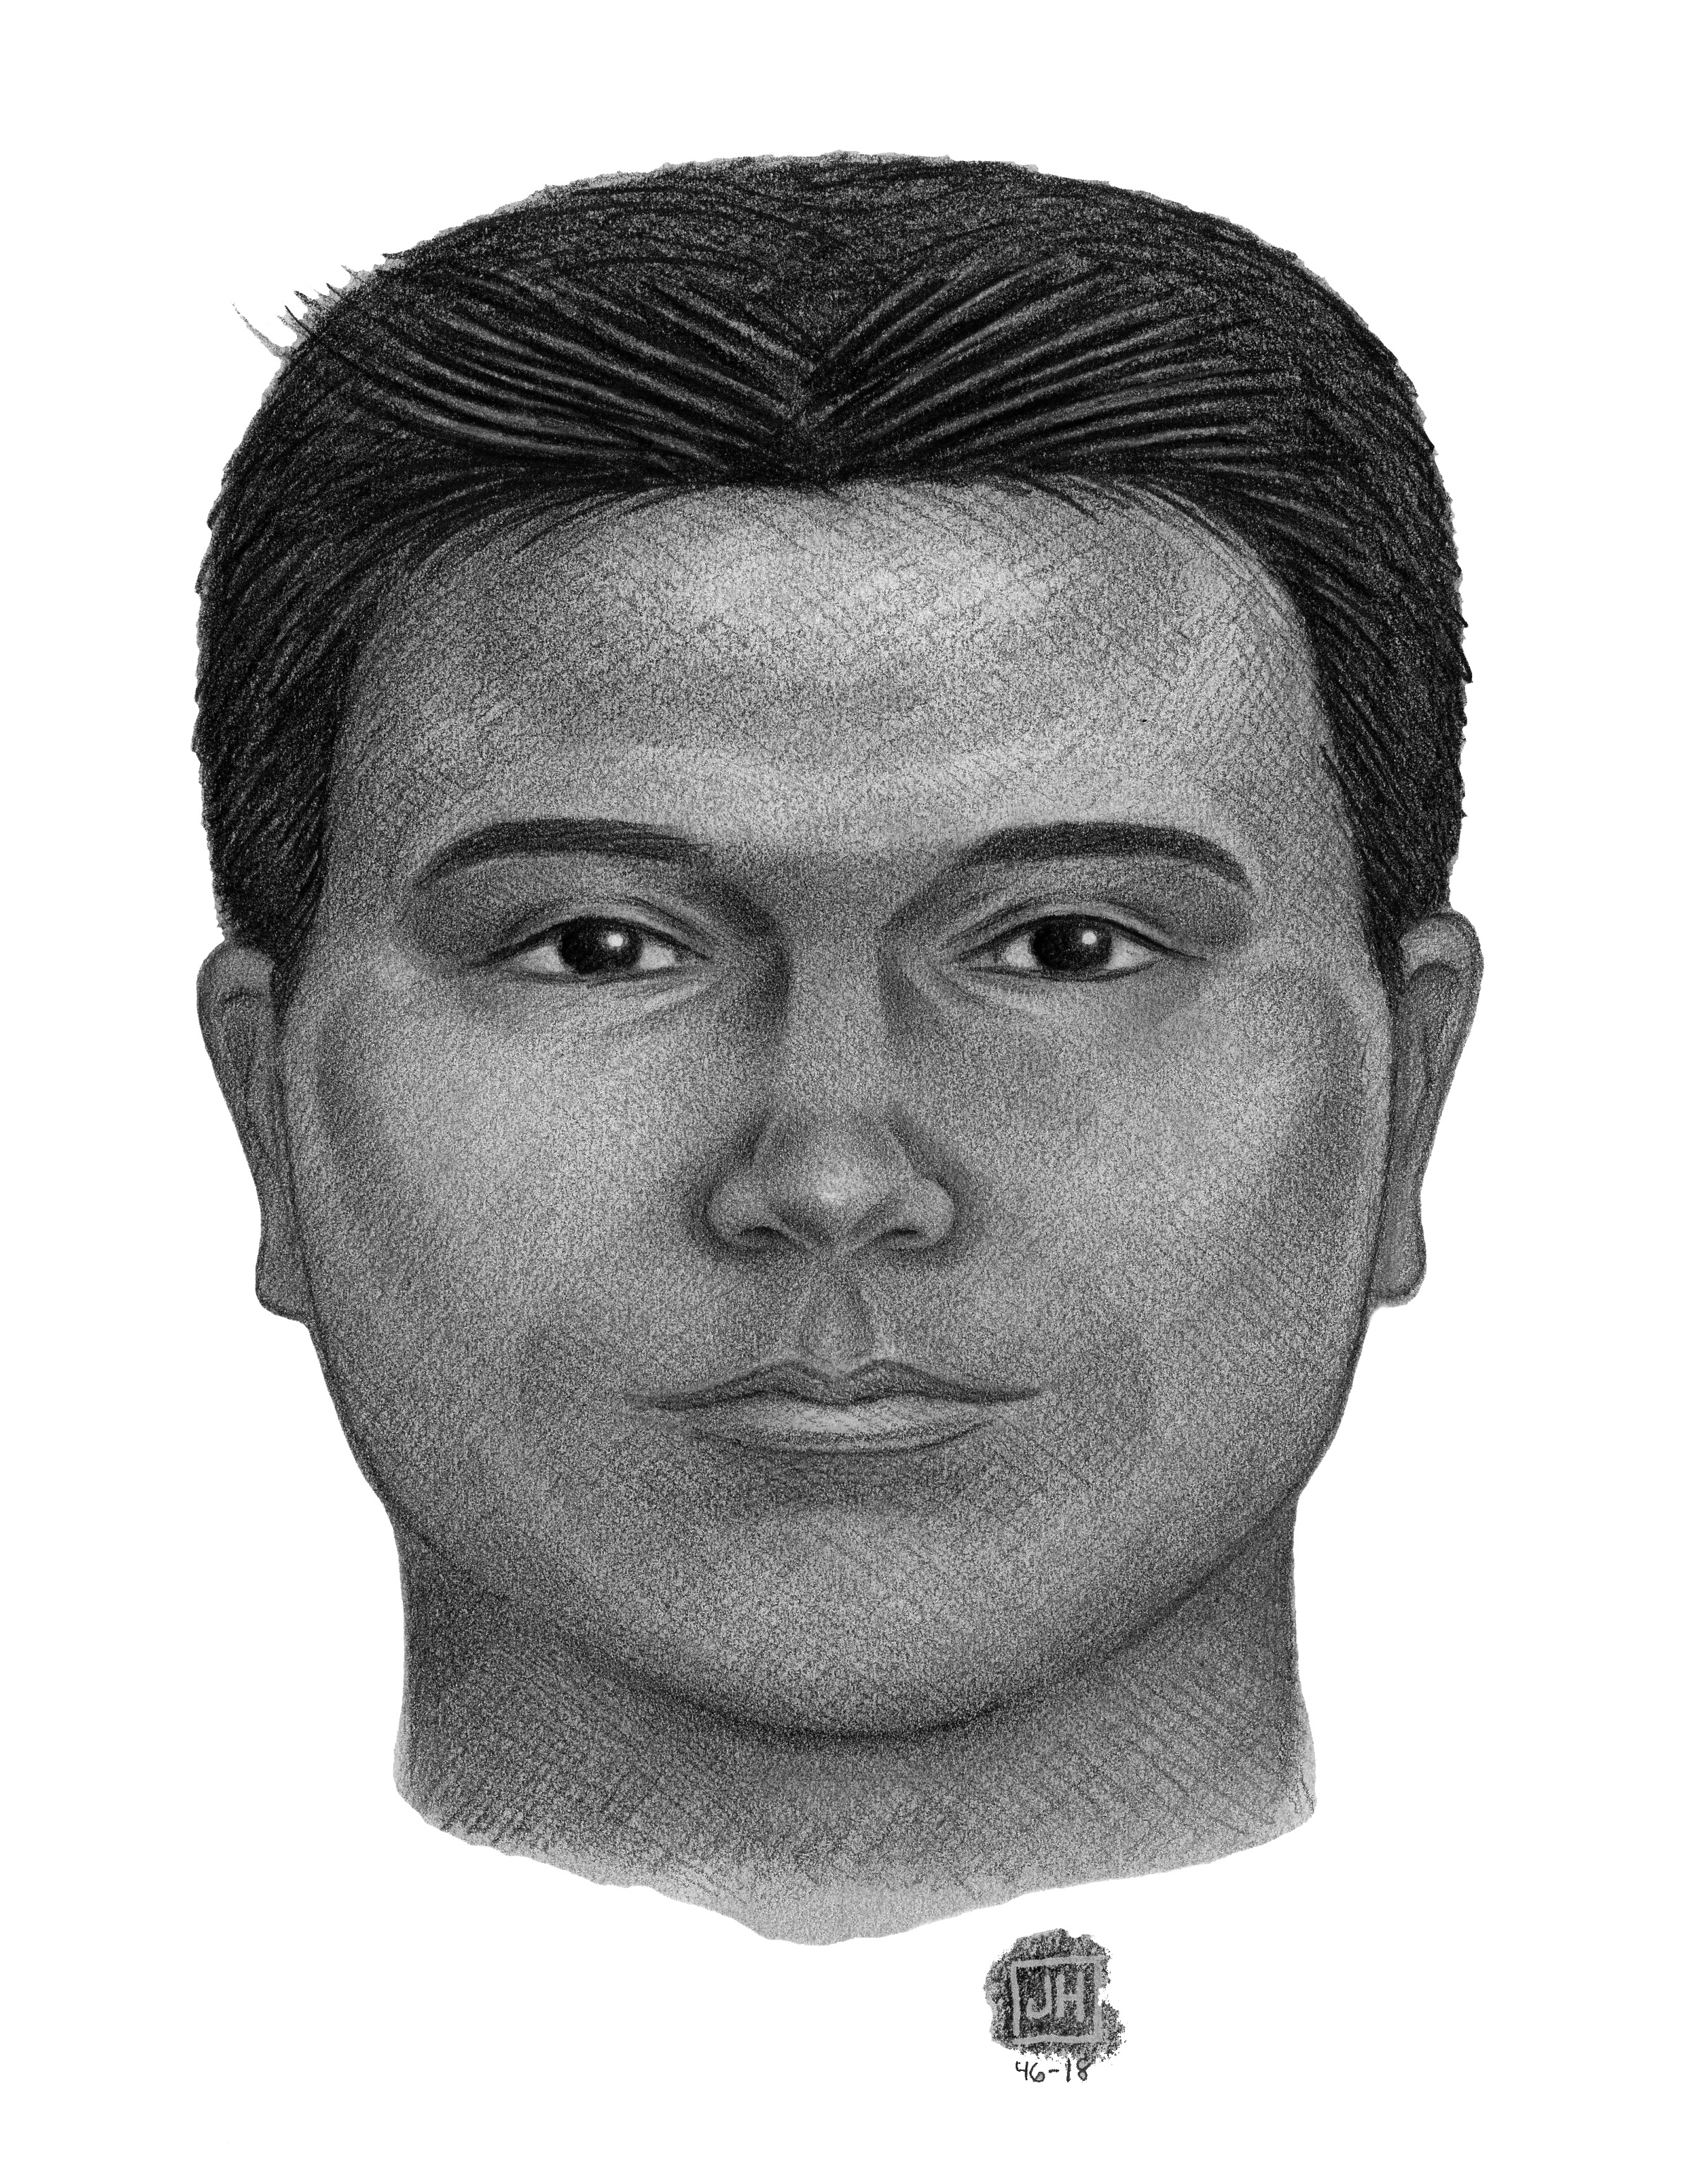 A police sketch of the suspect. Photo courtesy of the NYPD.